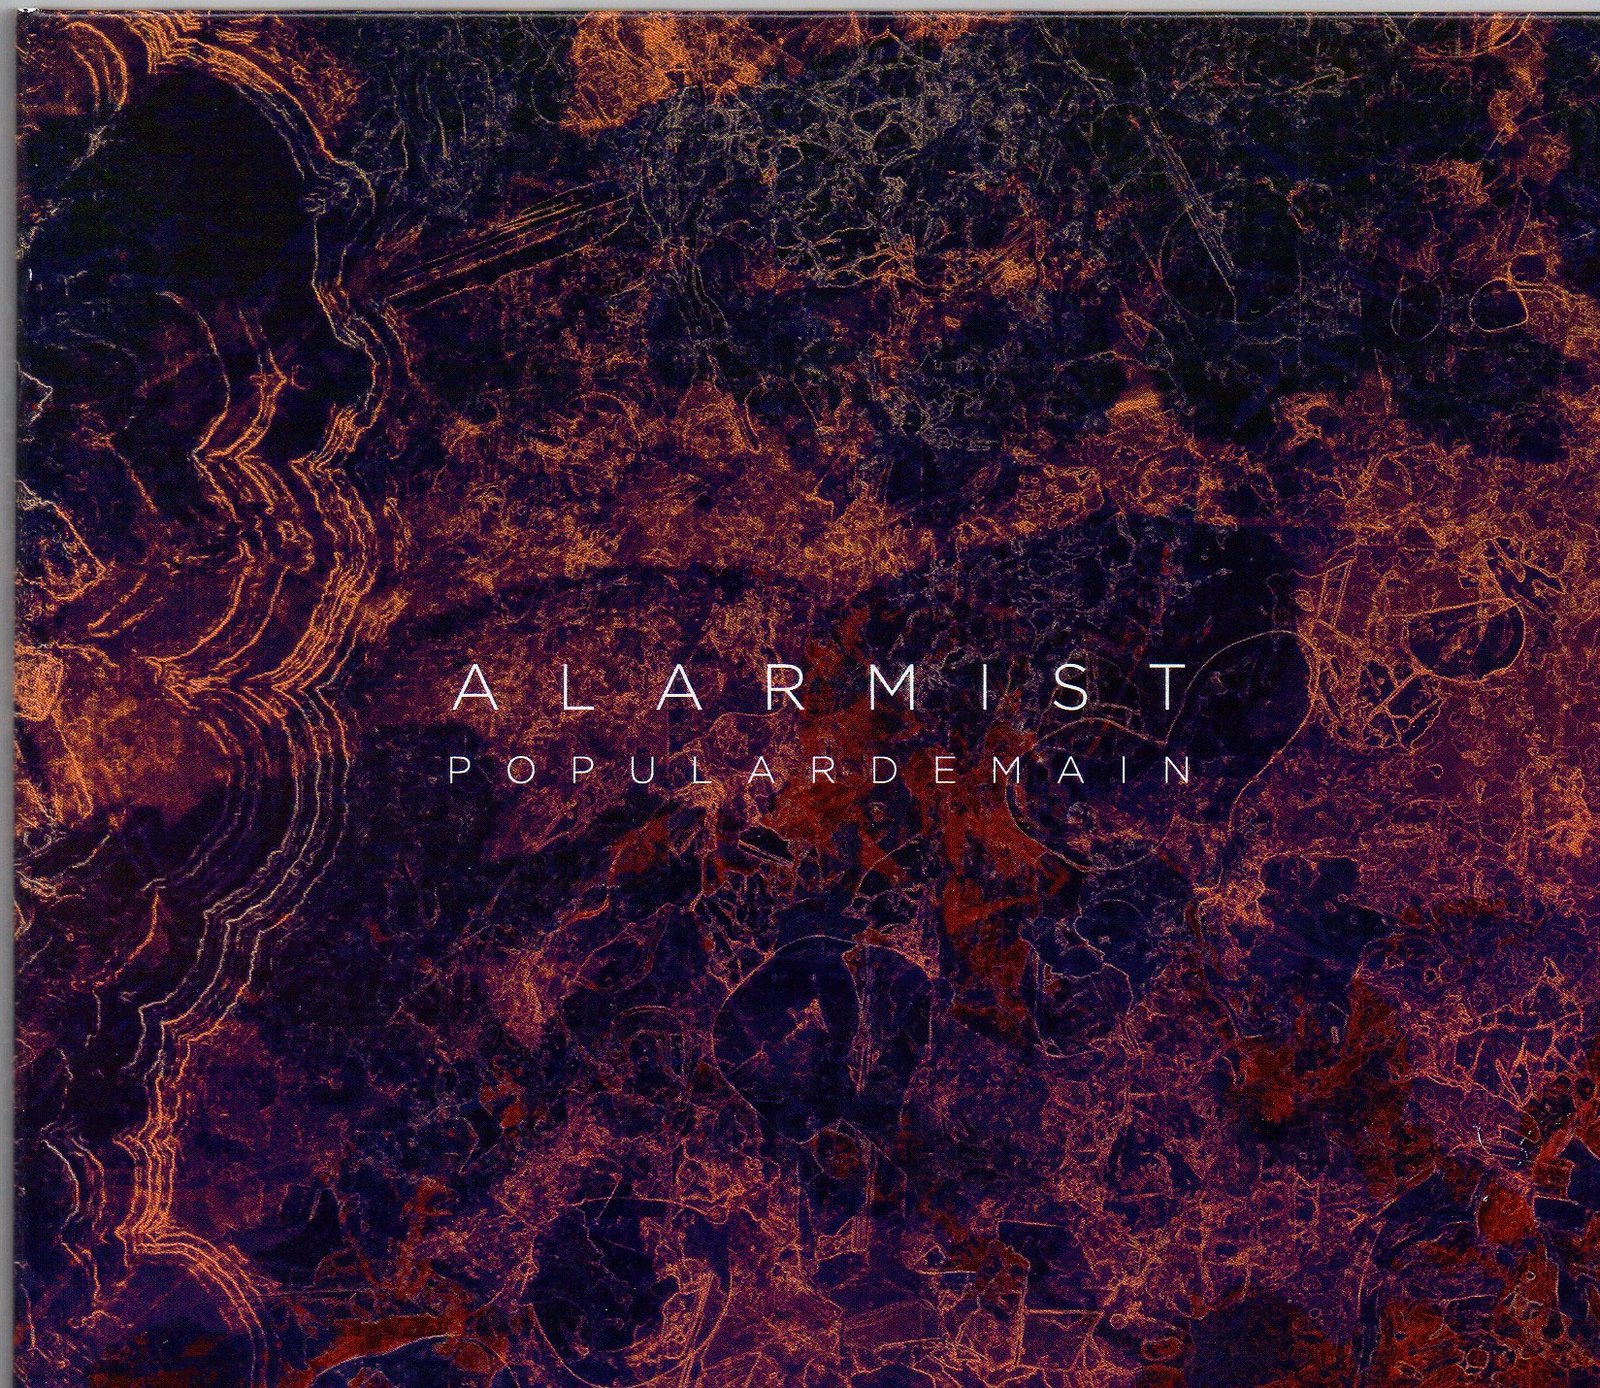 ALARMIST Popular Demain